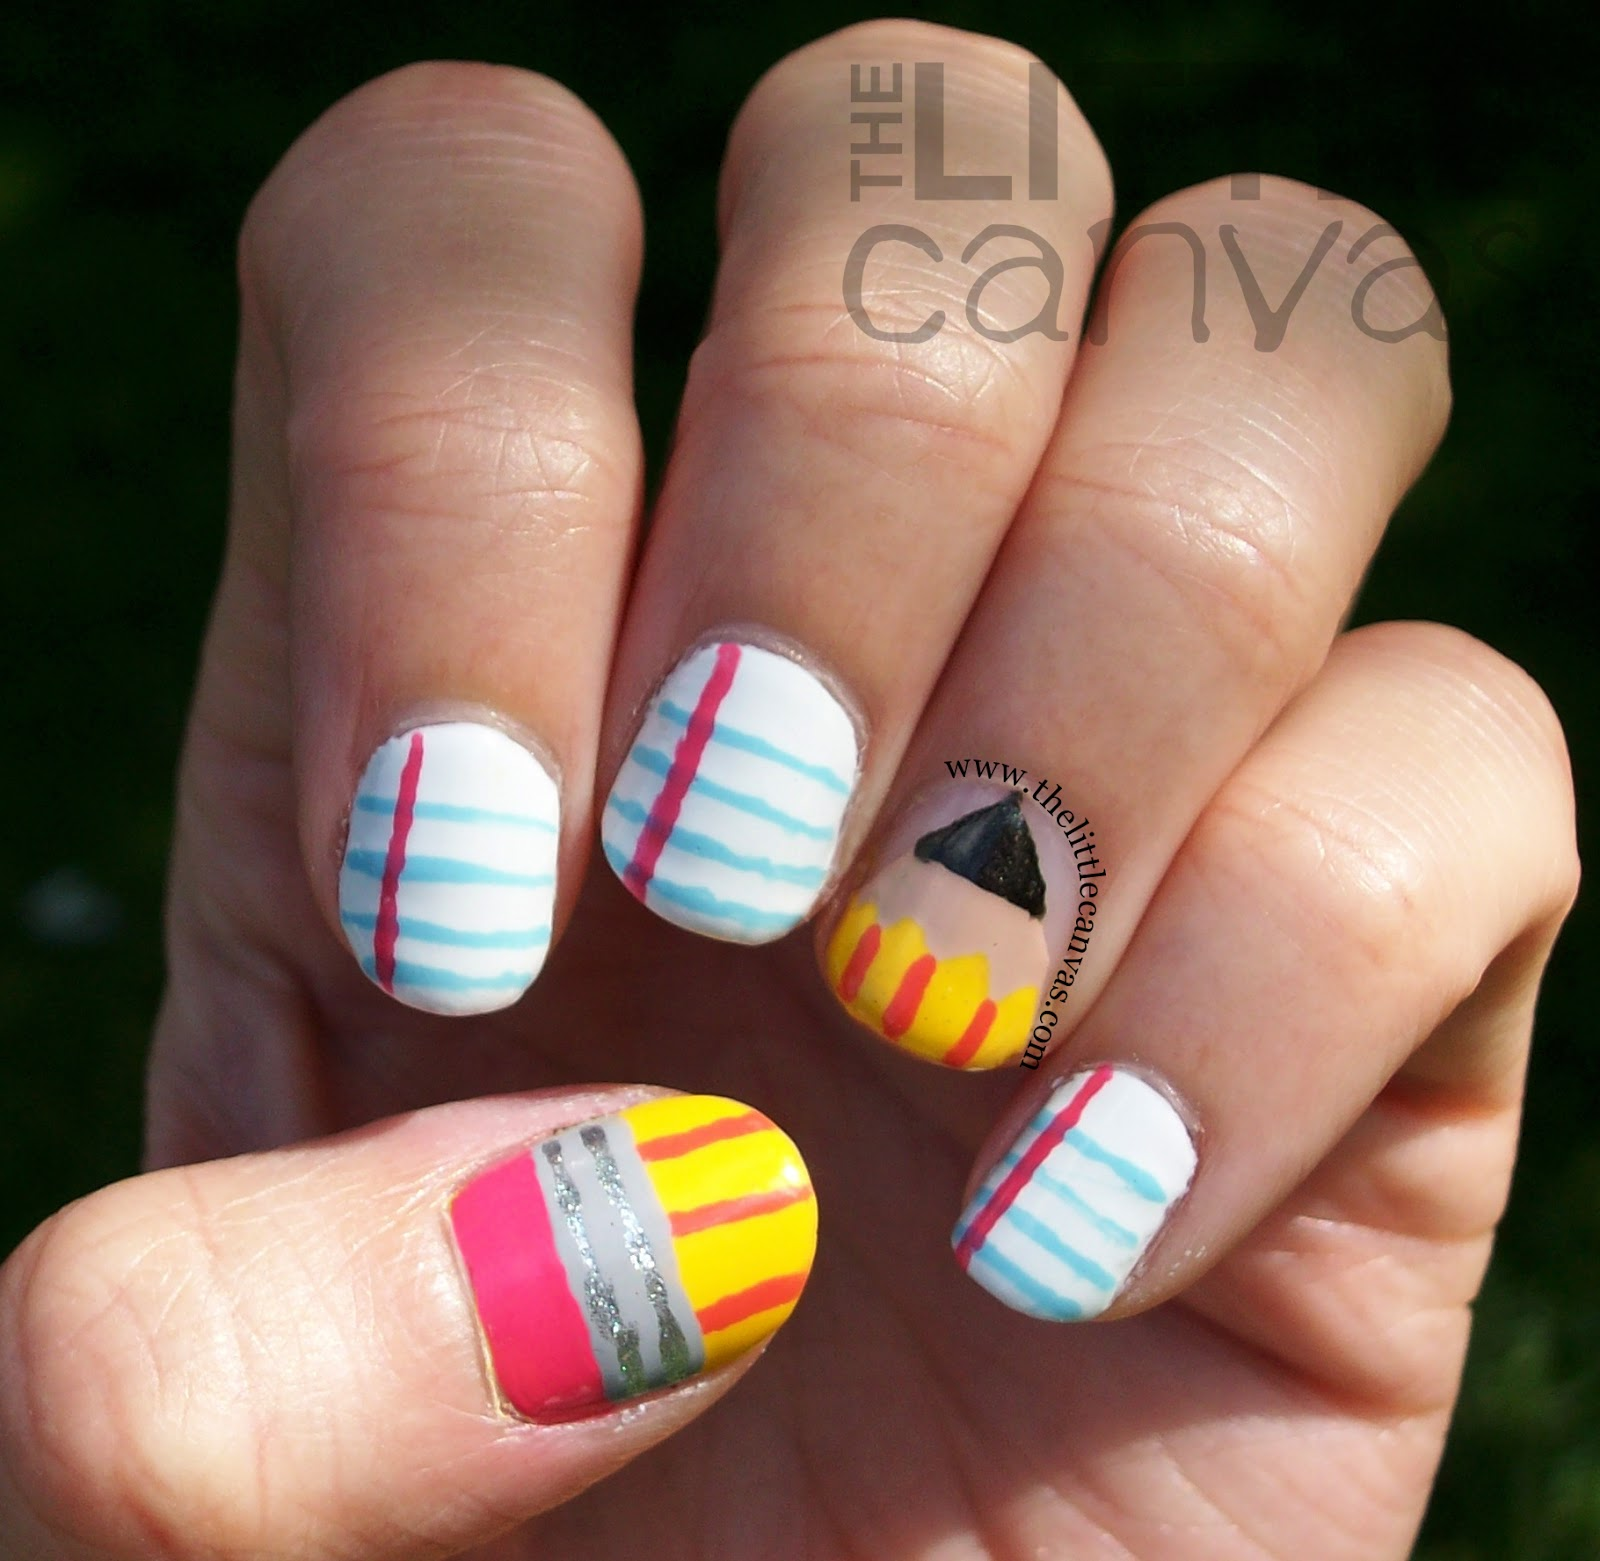 Back to school nail art tutorial the little canvas enough of my babbling lets take a look and ill tell you how i created this cute little design prinsesfo Gallery